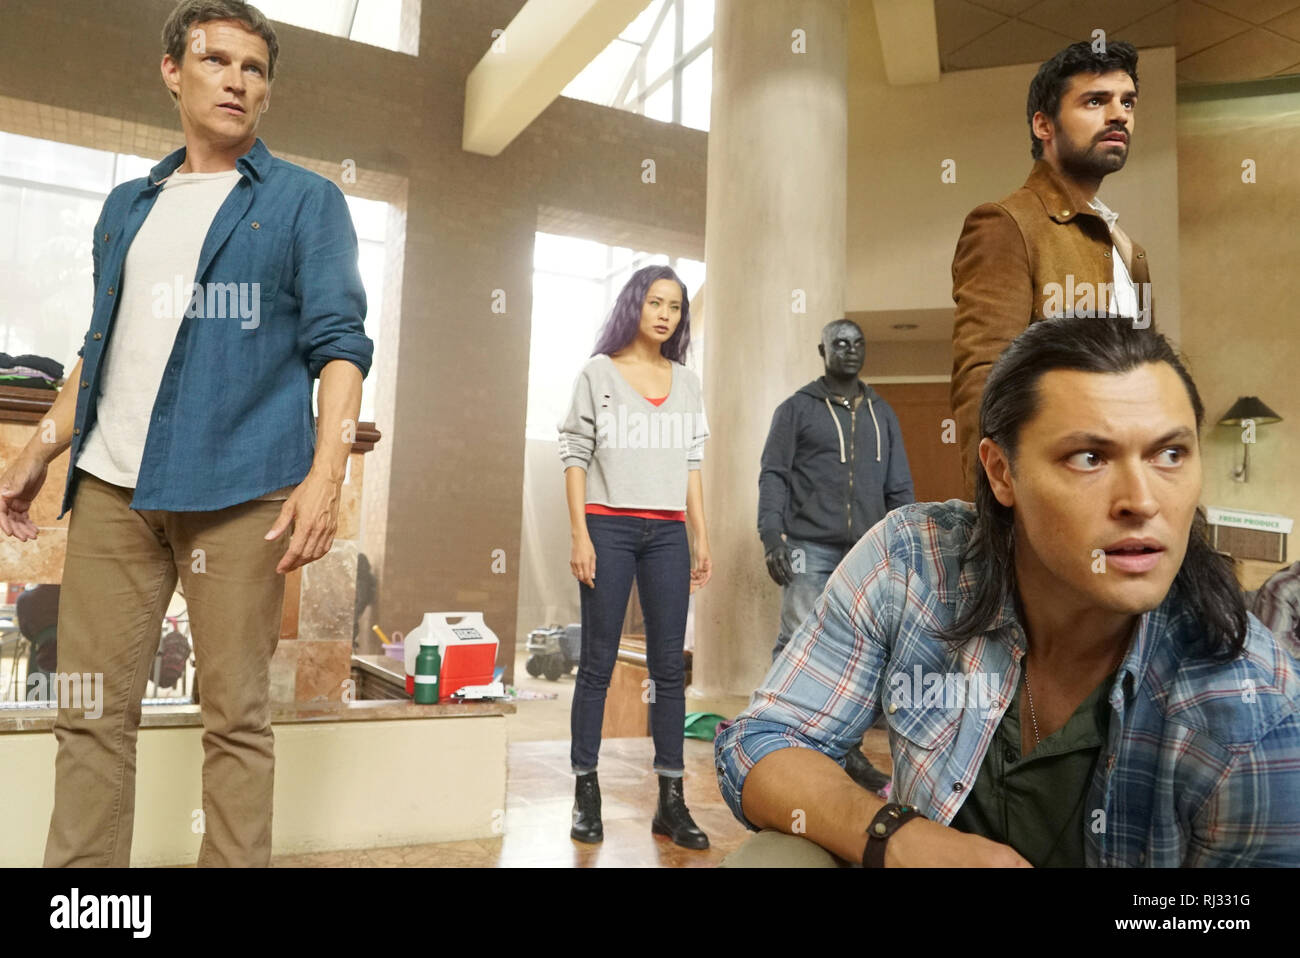 Stephen Moyer, Jamie Chung, Jermaine Rivers, Sean Teale, Blair Redford, 'The Gifted' Season 2 (2019)  Credit: Fox Broadcasting Co. / The Hollywood Archive - Stock Image